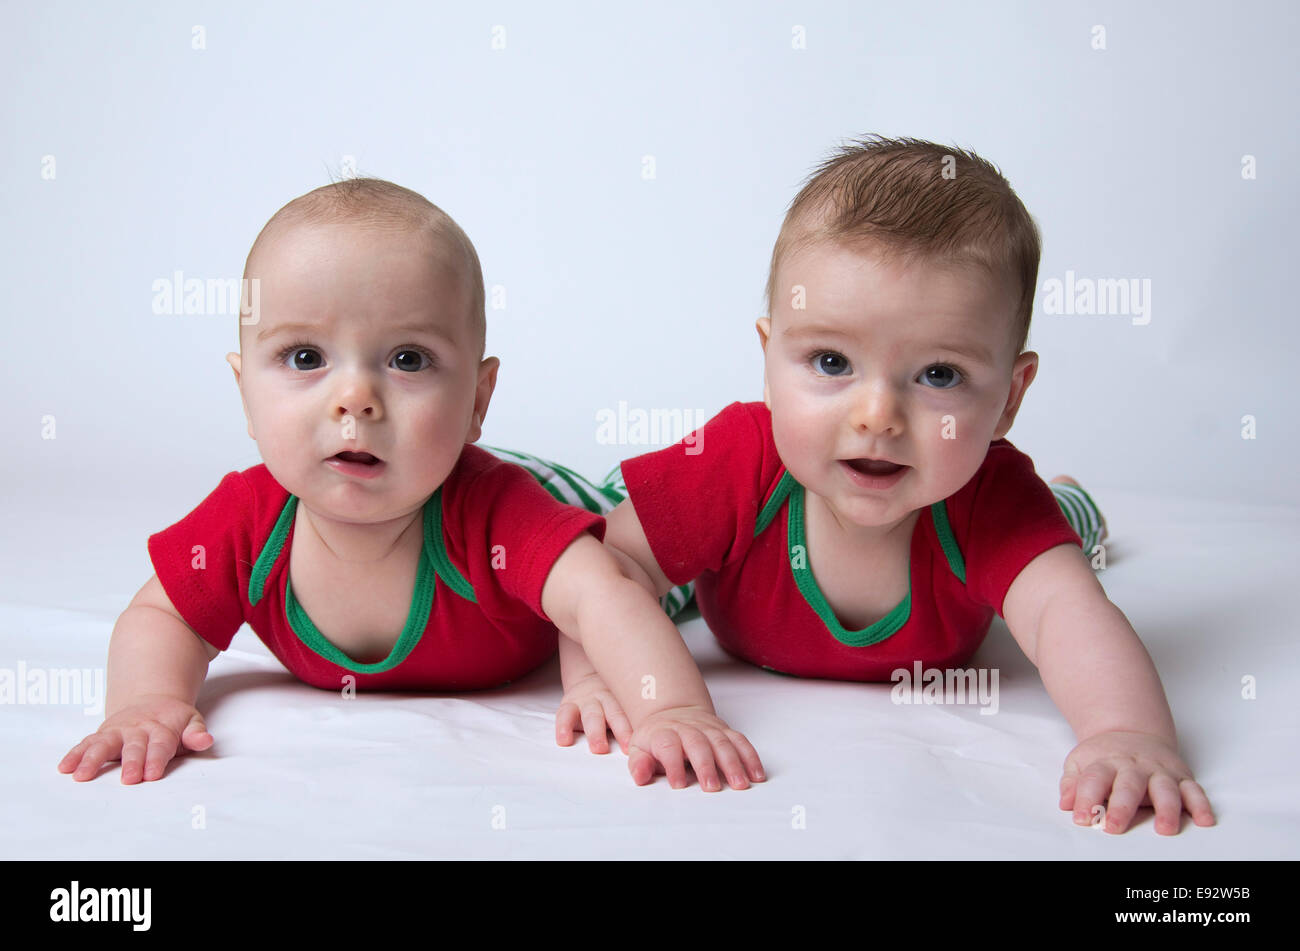 Fraternal 9 month twins boys holding their head ups and looking suspicious or discontented or unsure - Stock Image